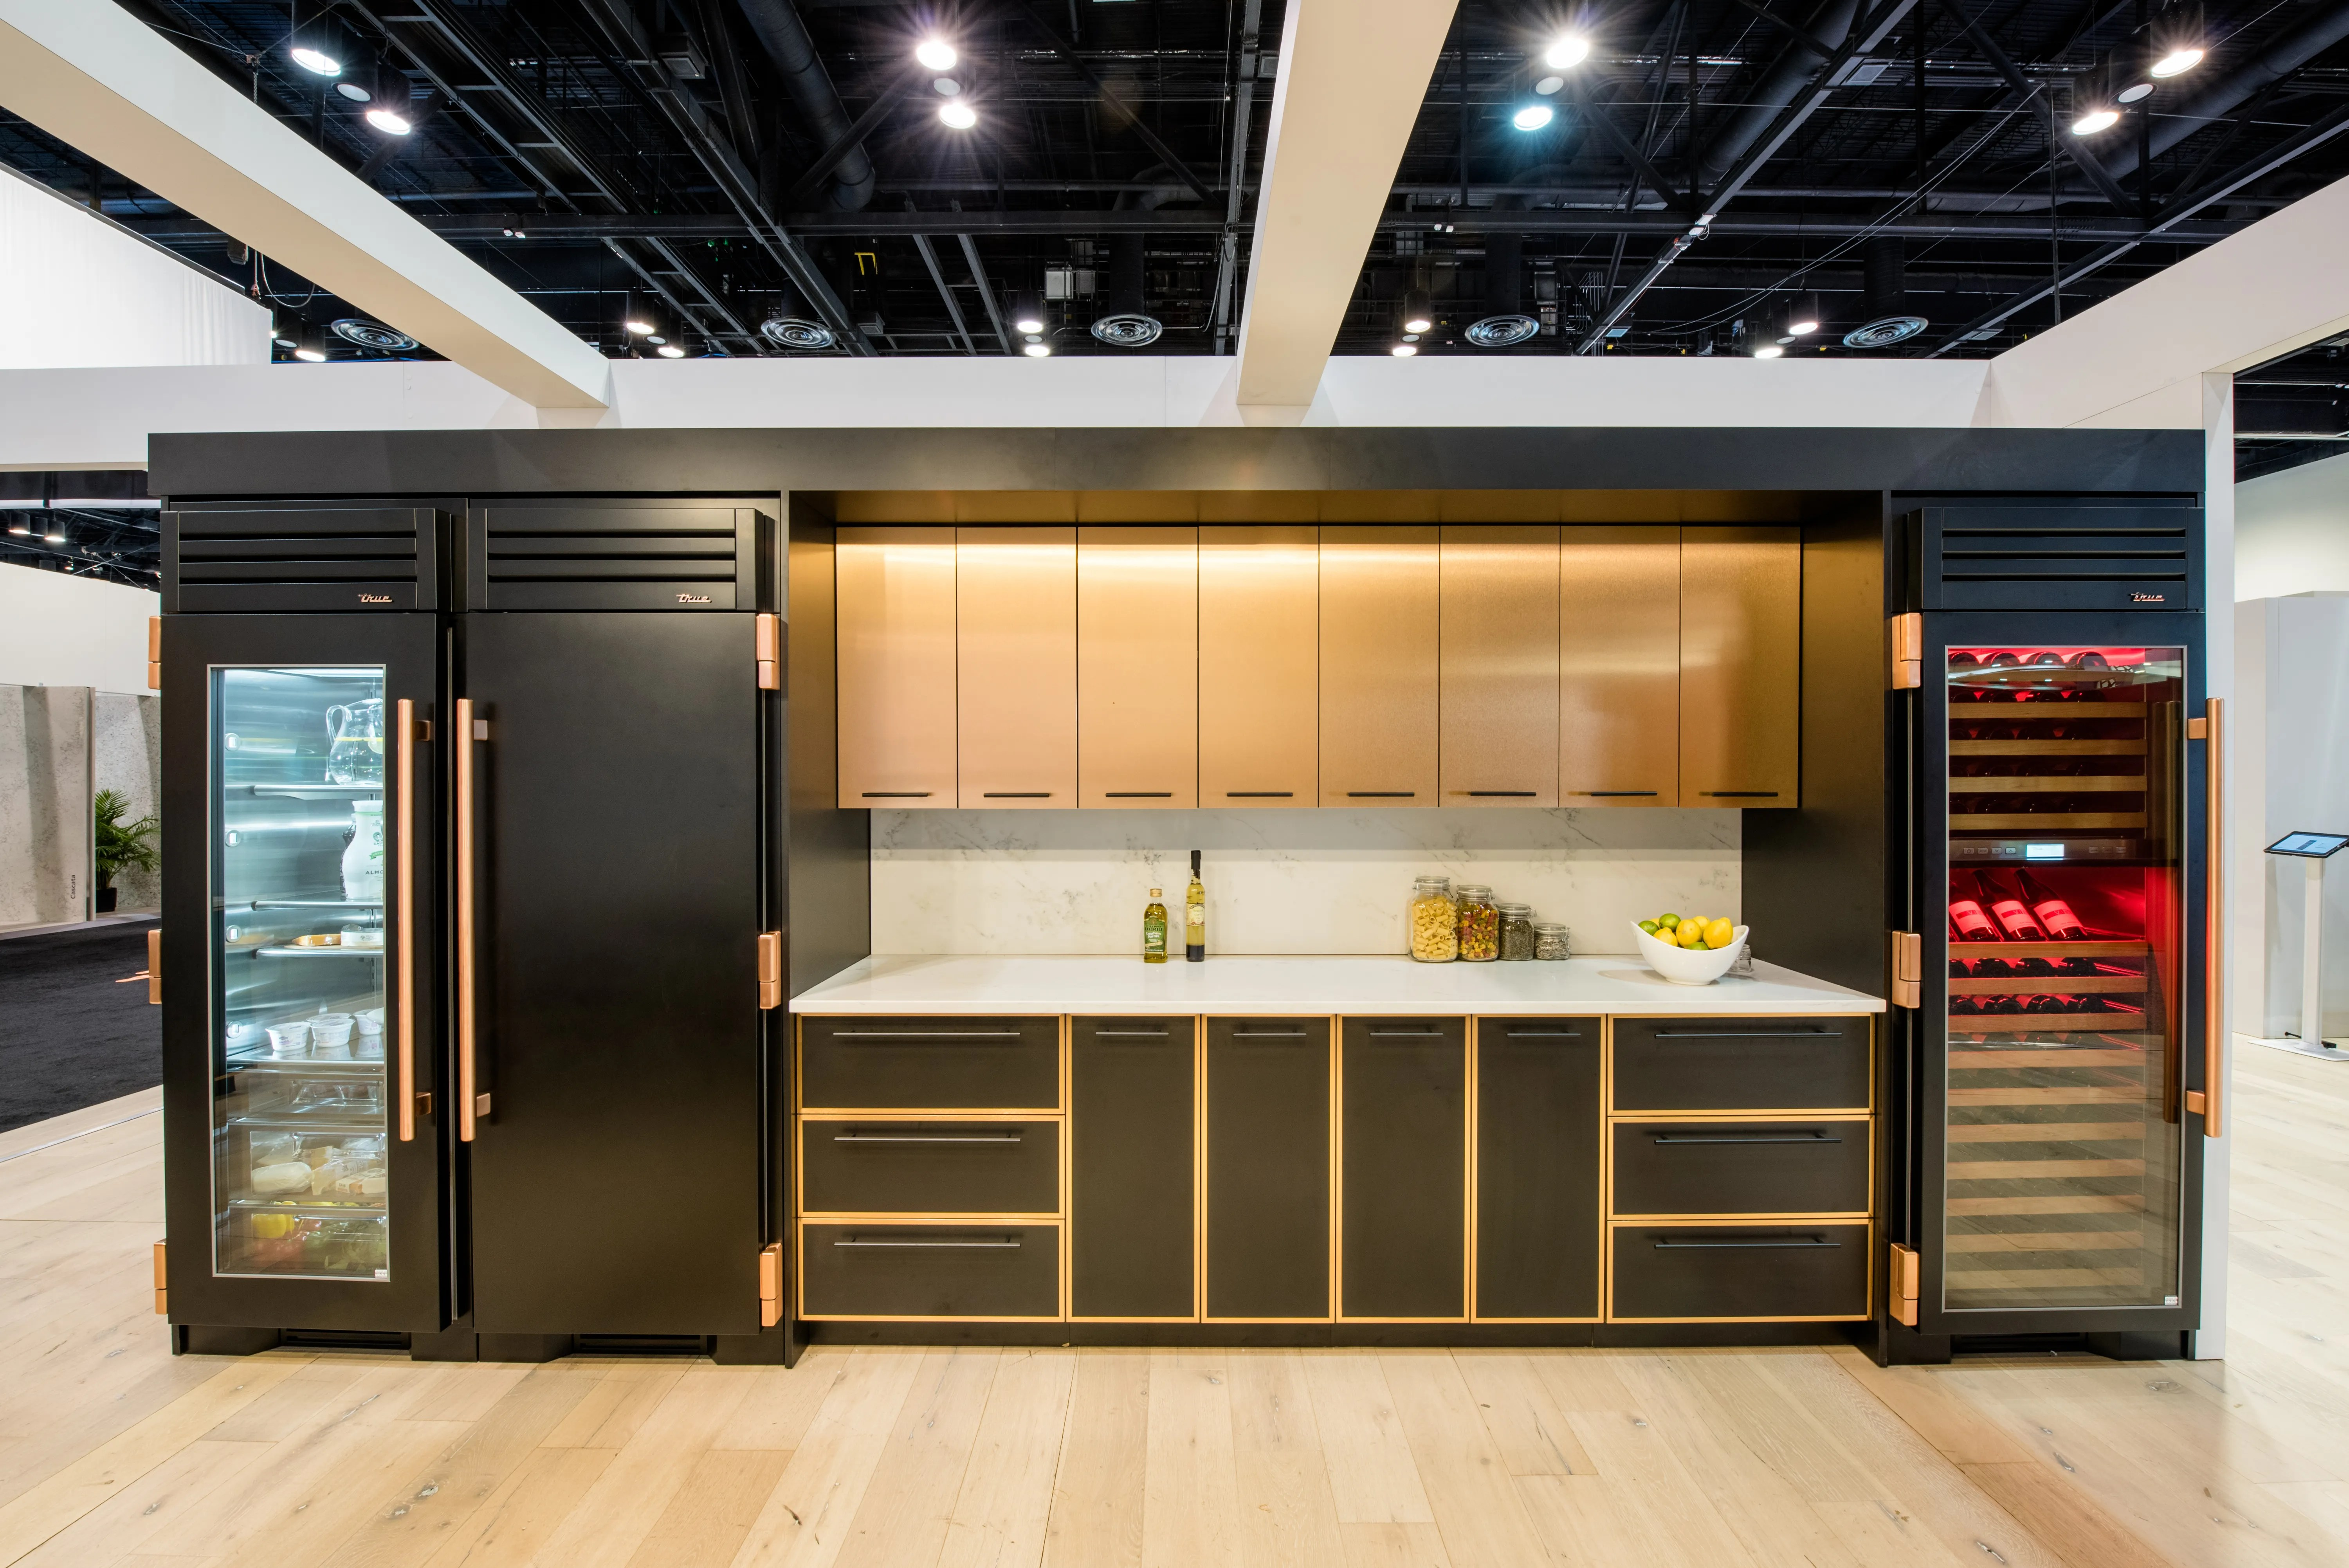 Designers Favorite Finds at the Architectural Digest Design Show  Architectural Digest